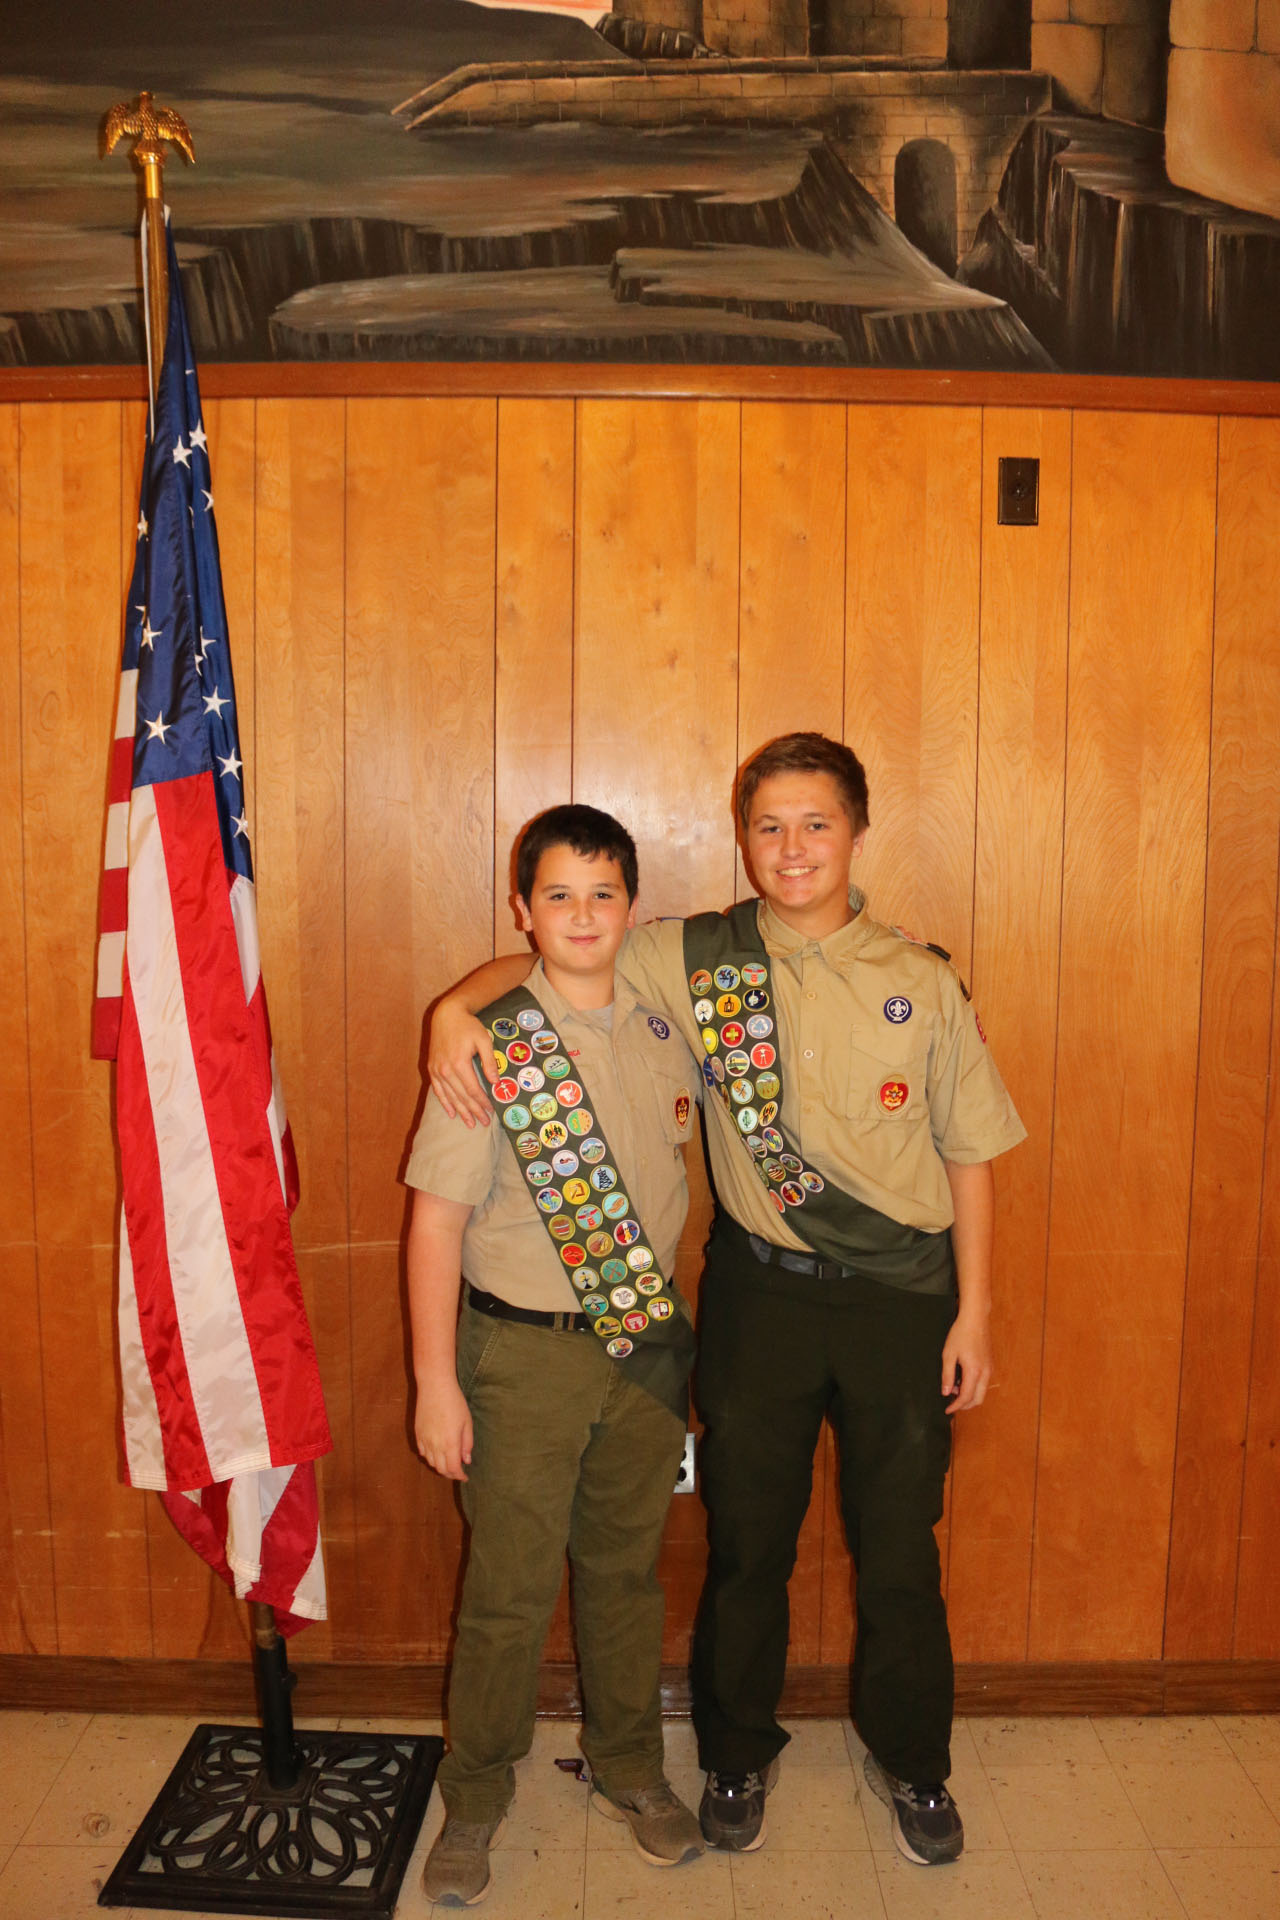 Two boy scouts stand with flag